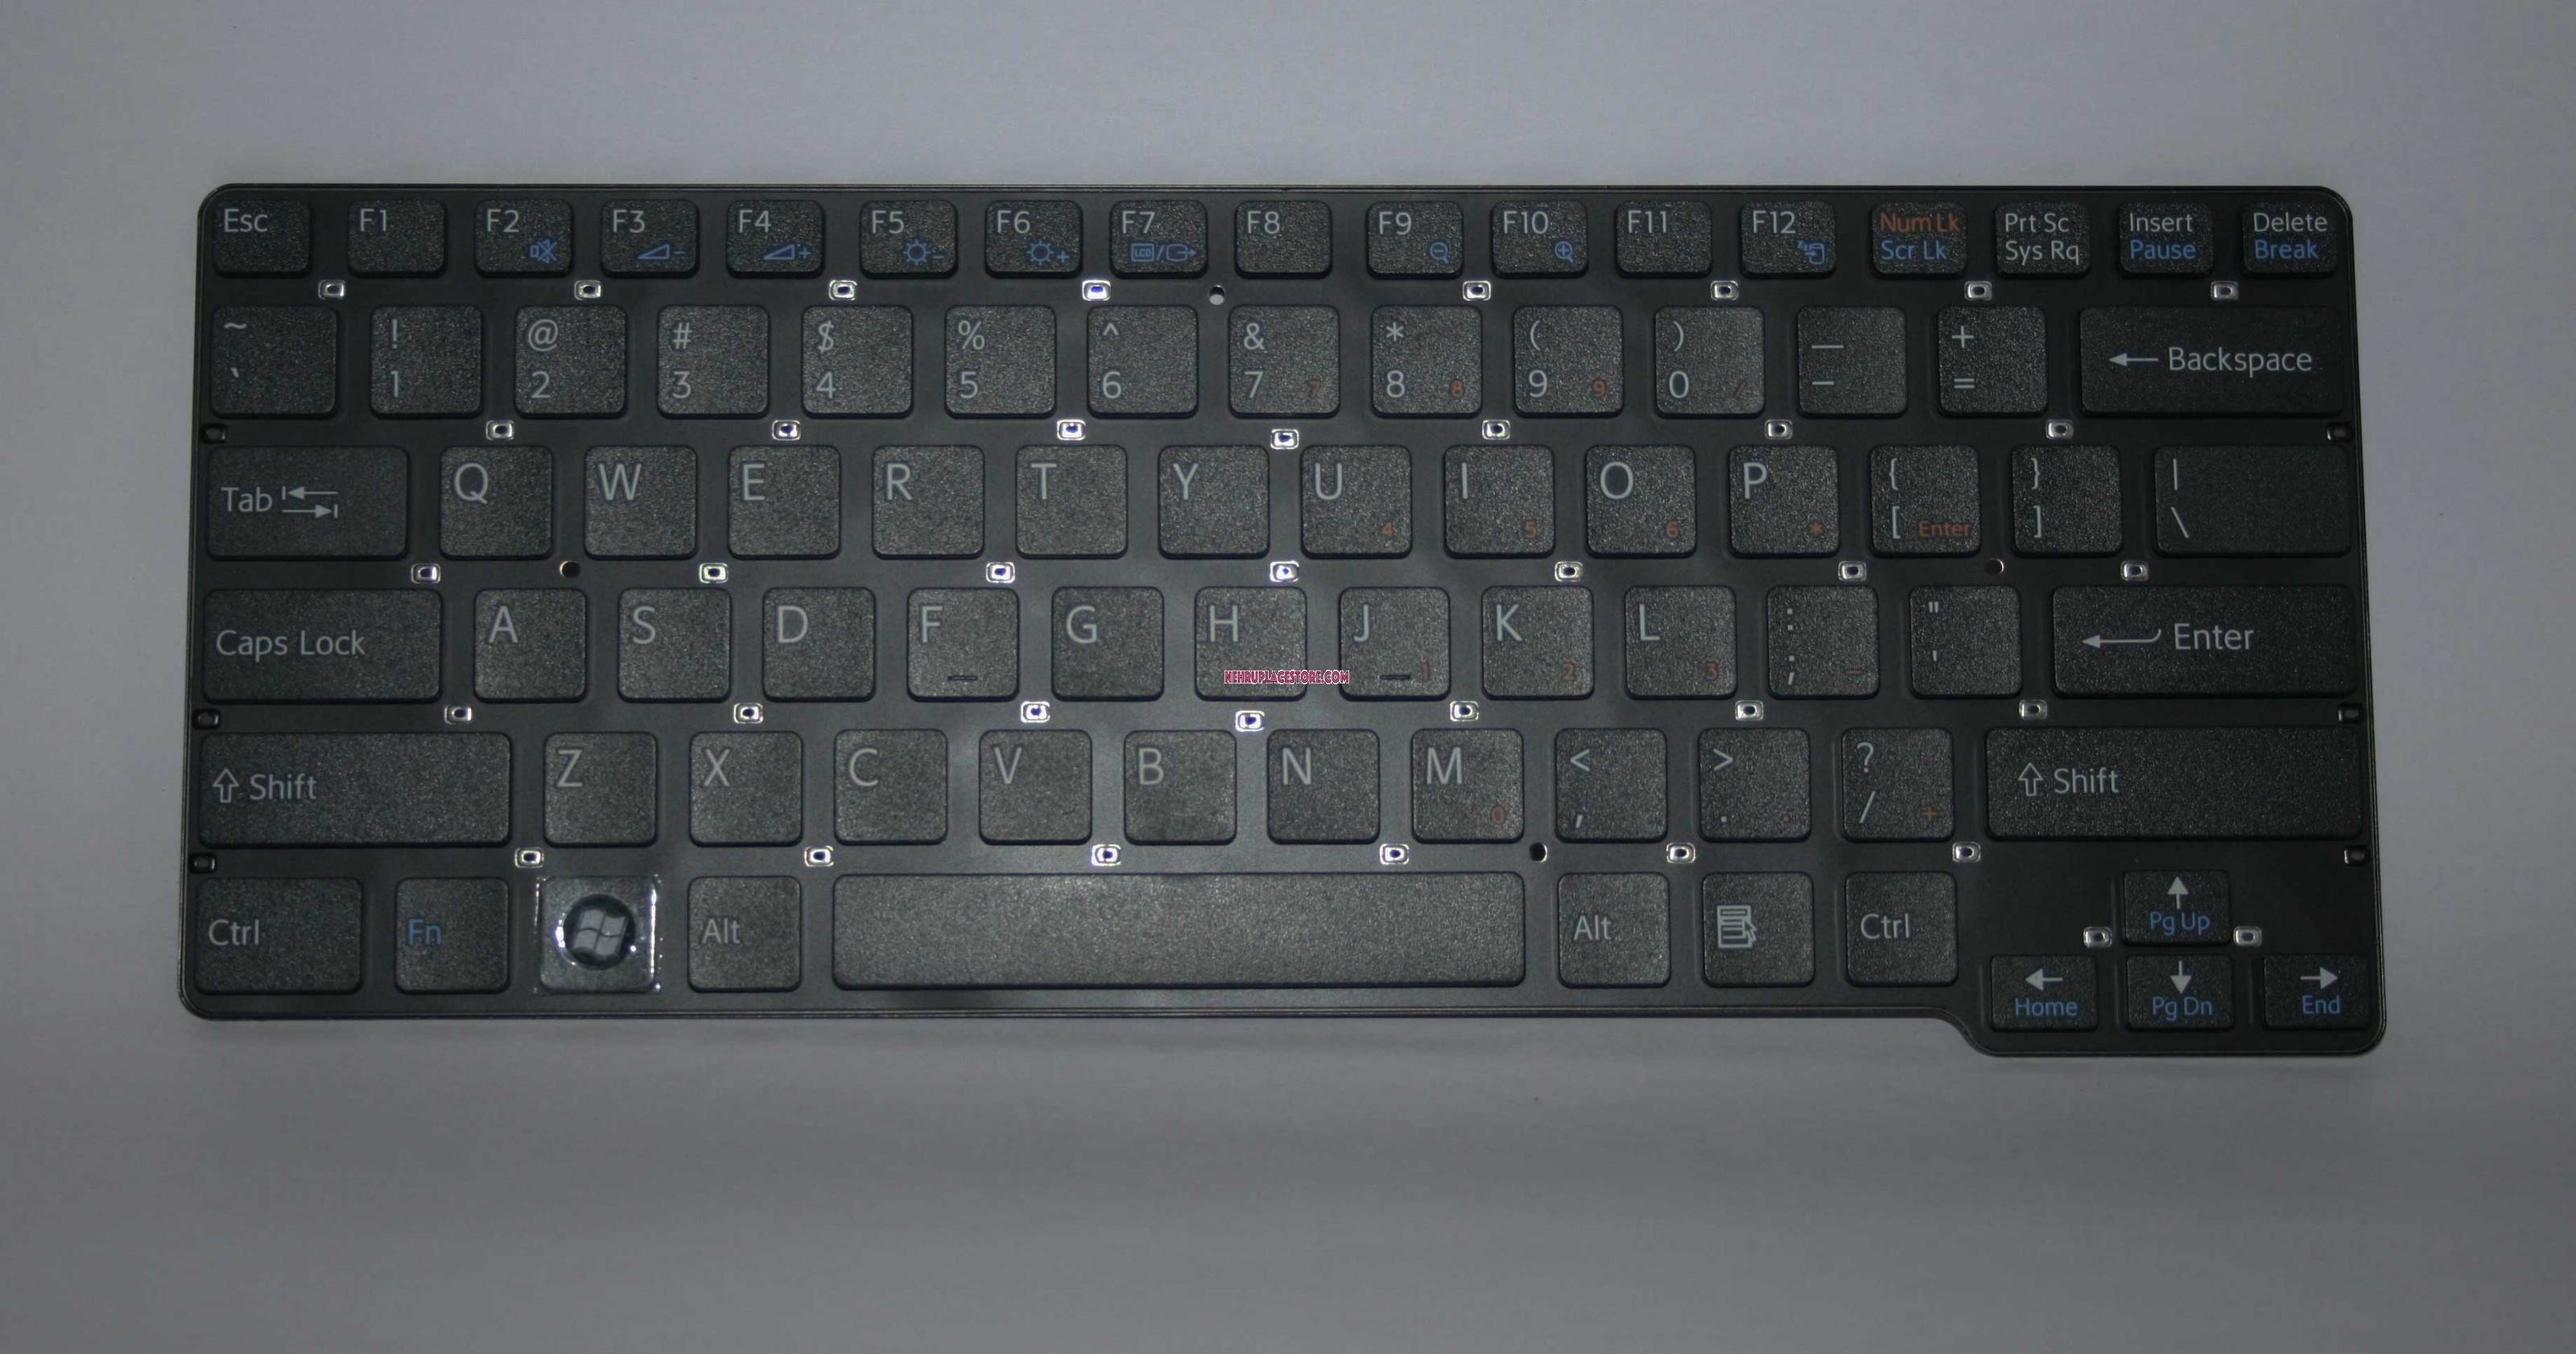 Sony Vpc Cw With Black Frame Us Layout Keyboard 148754521